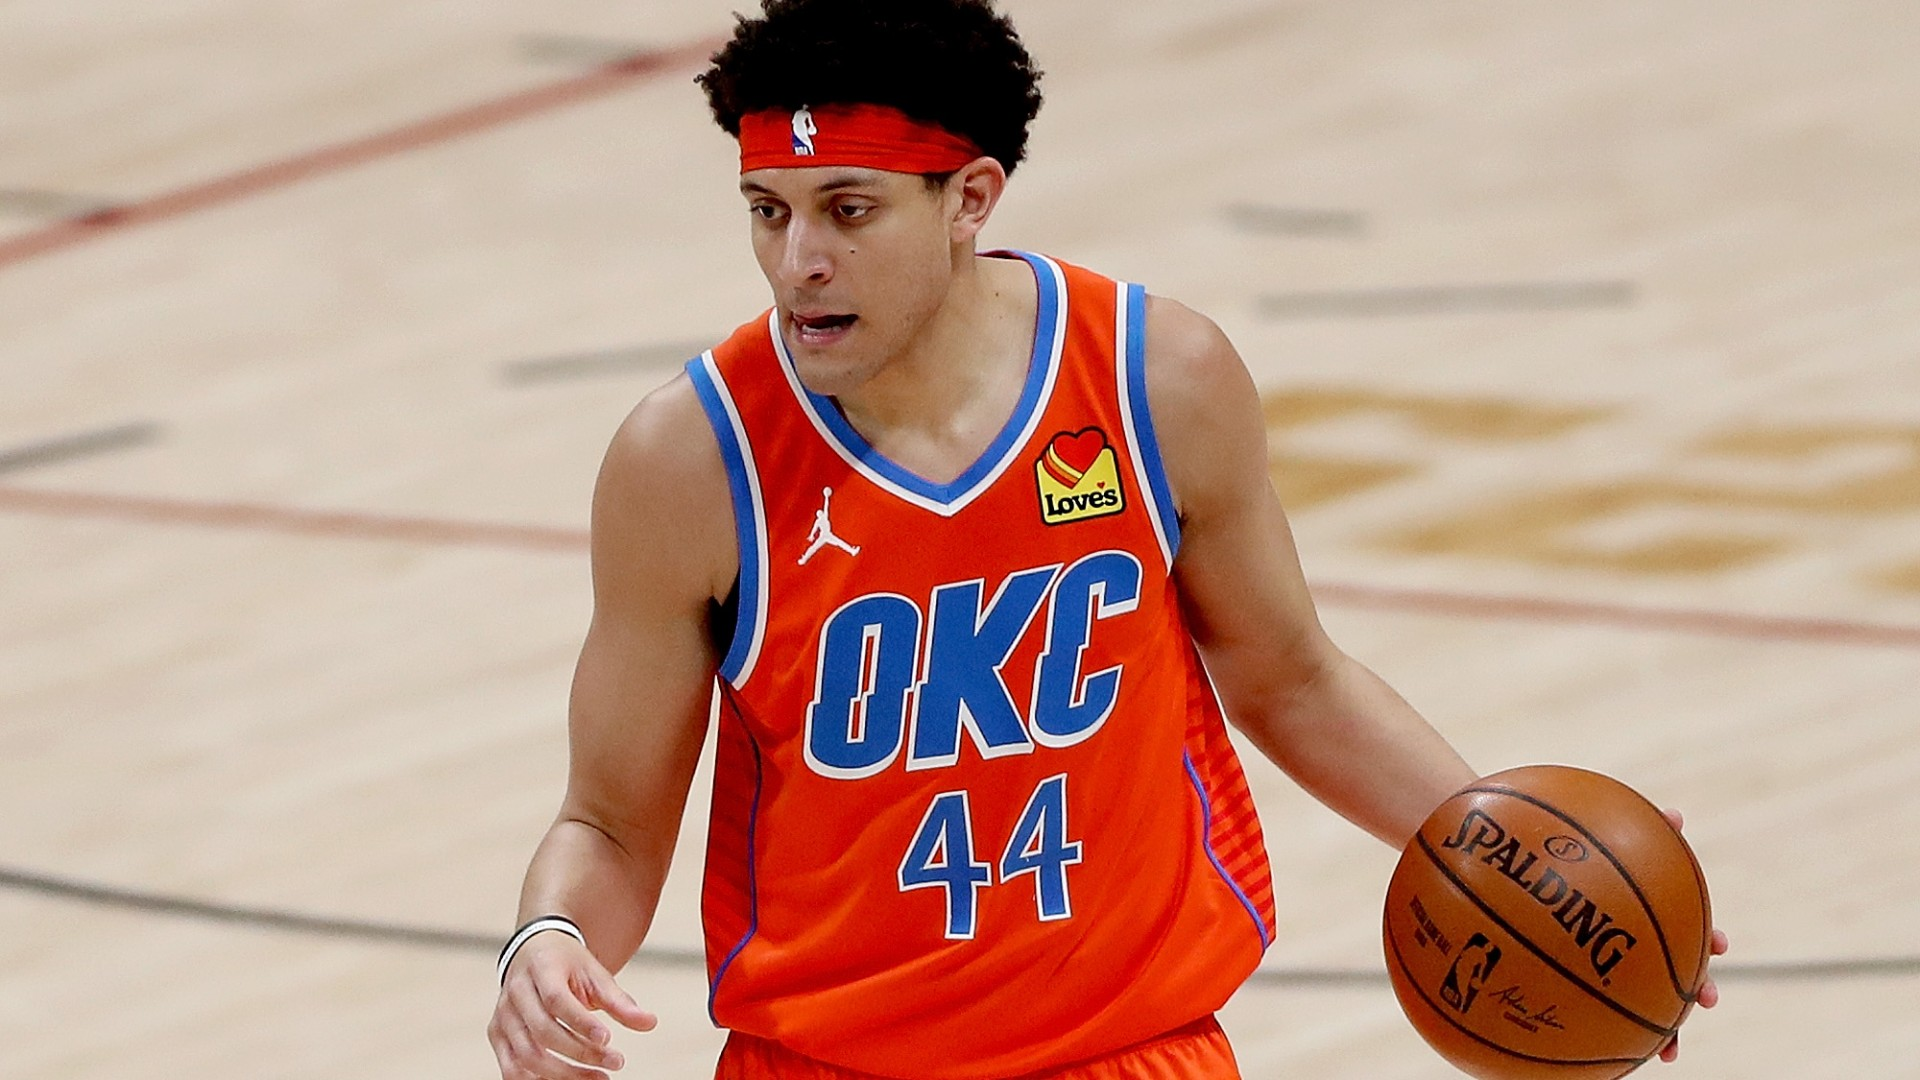 Thunder forced to change uniforms at halftime after ugly color clash with Hawks